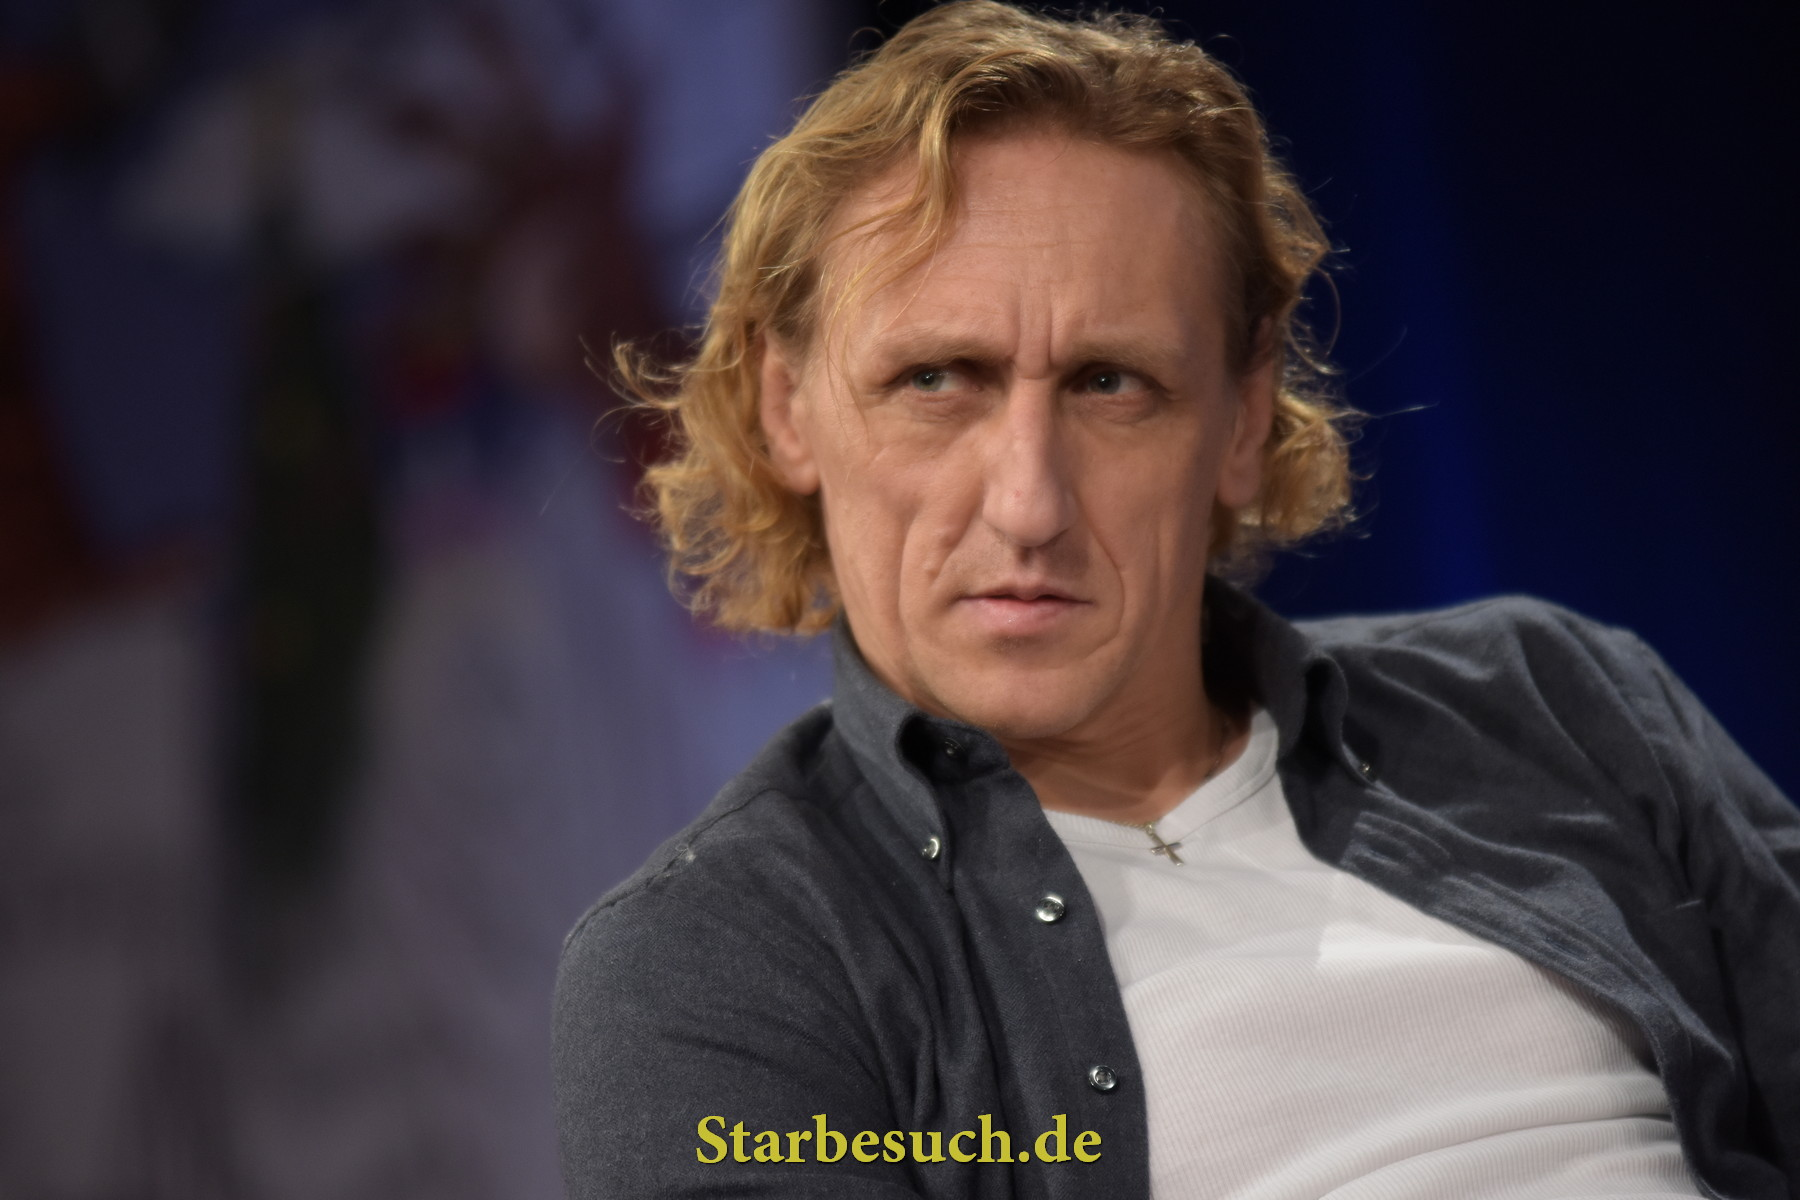 Dortmund, Germany - December 9th 2017: Actor and Stuntman Vladimir 'Furdo' Furdik (* 1970, The Night King in Game of Thrones; Stunts in James Bond: Skyfall) at German Comic Con Dortmund.